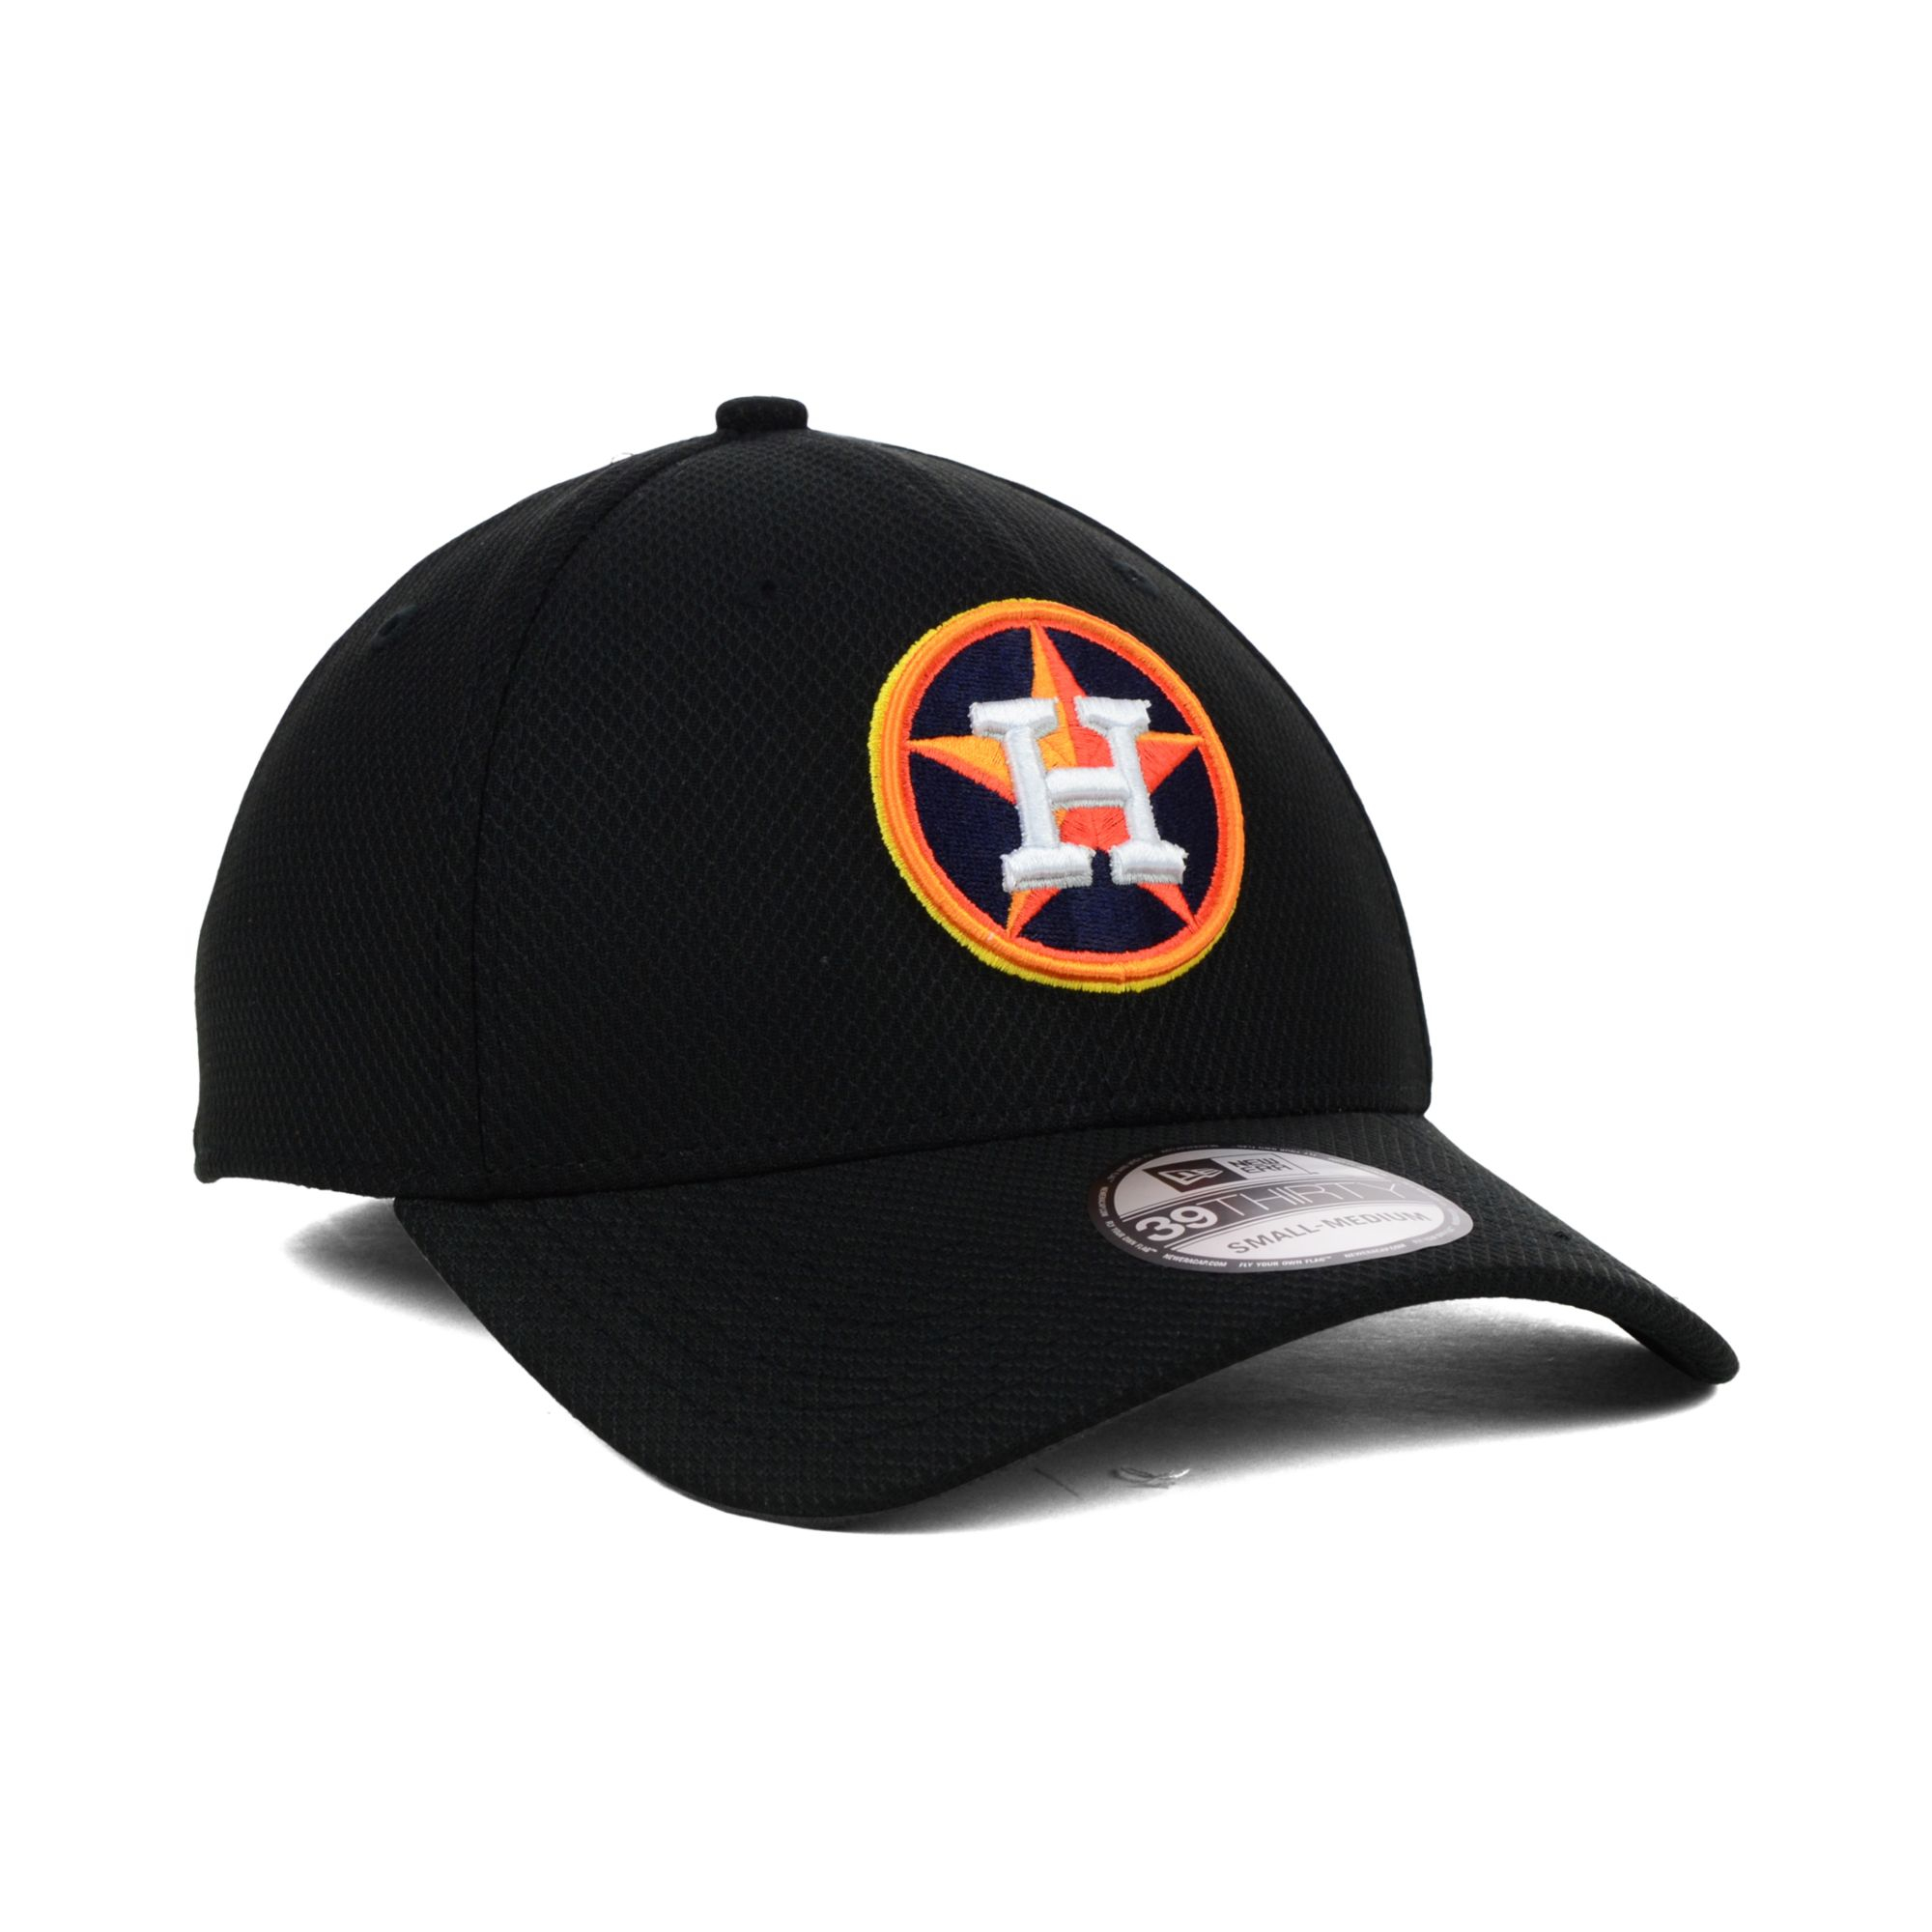 uk availability 6370f d004d ... switzerland clearance lyst ktz houston astros diamond era black  39thirty cap in black 86570 9dc38 45938